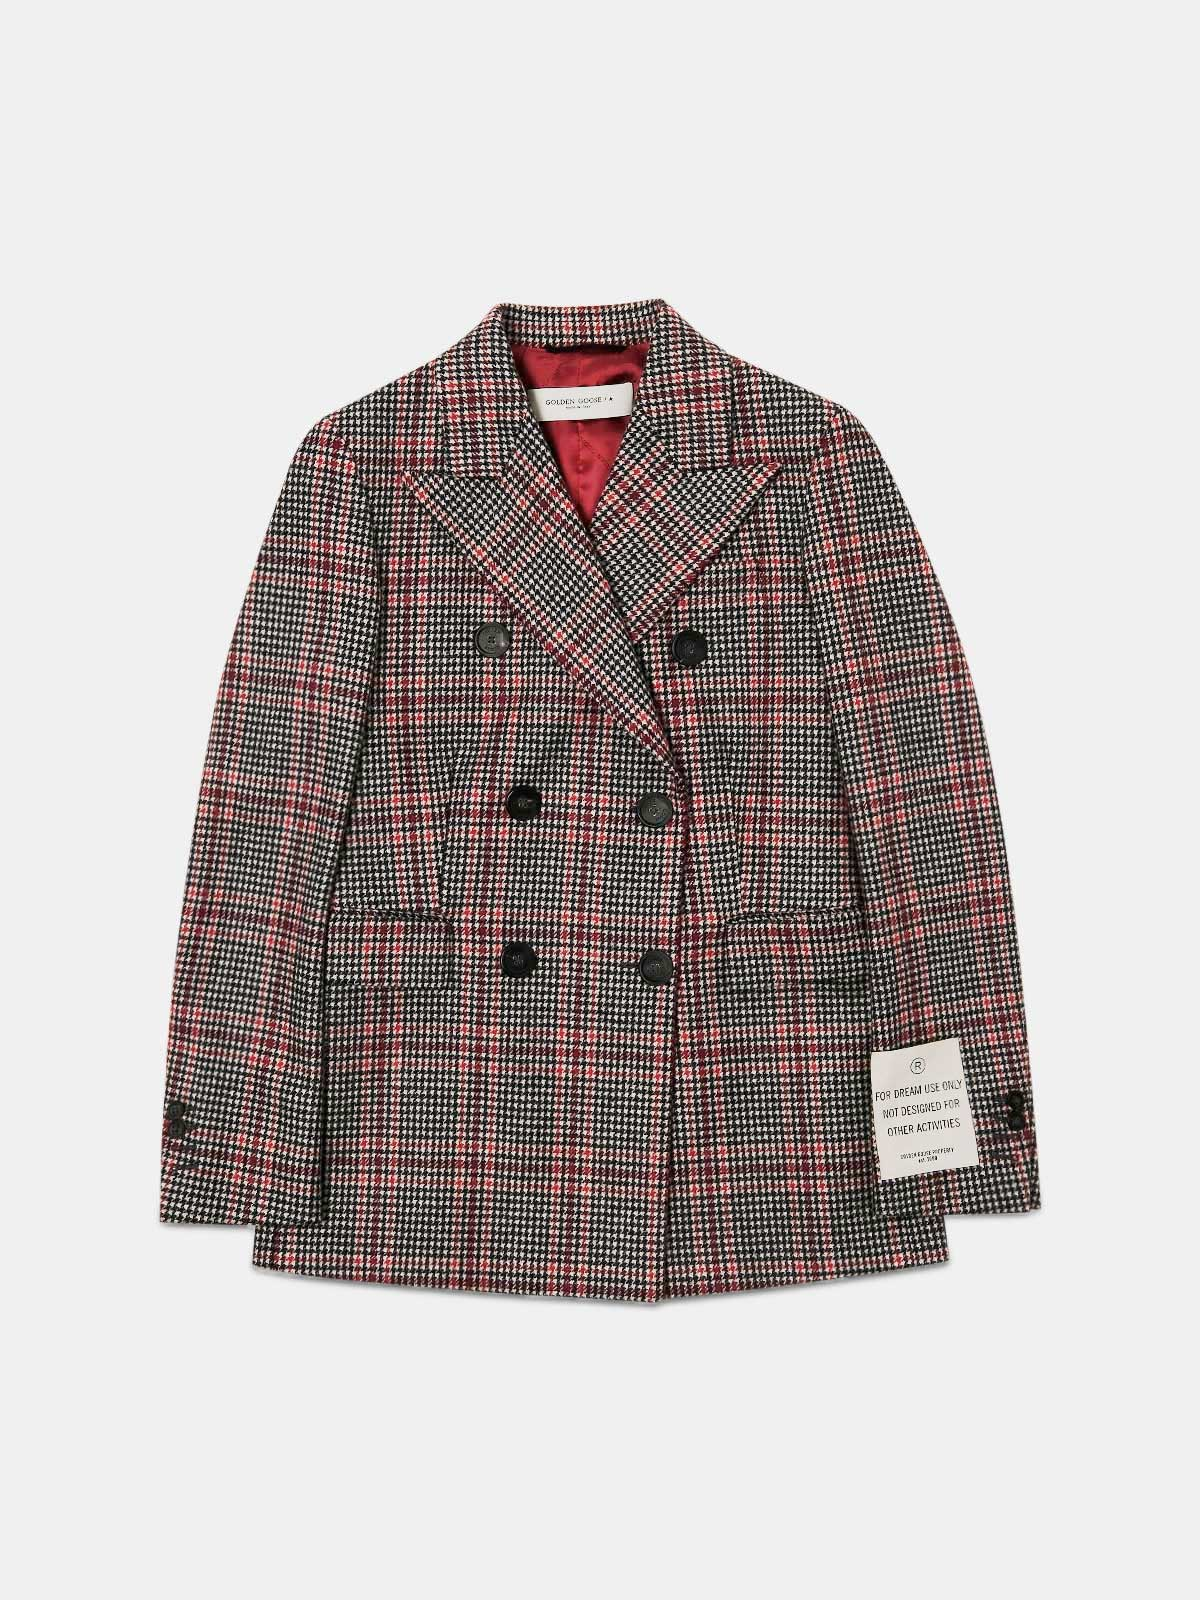 Golden Goose - Annabella double-breasted blazer with houndstooth tartan pattern in